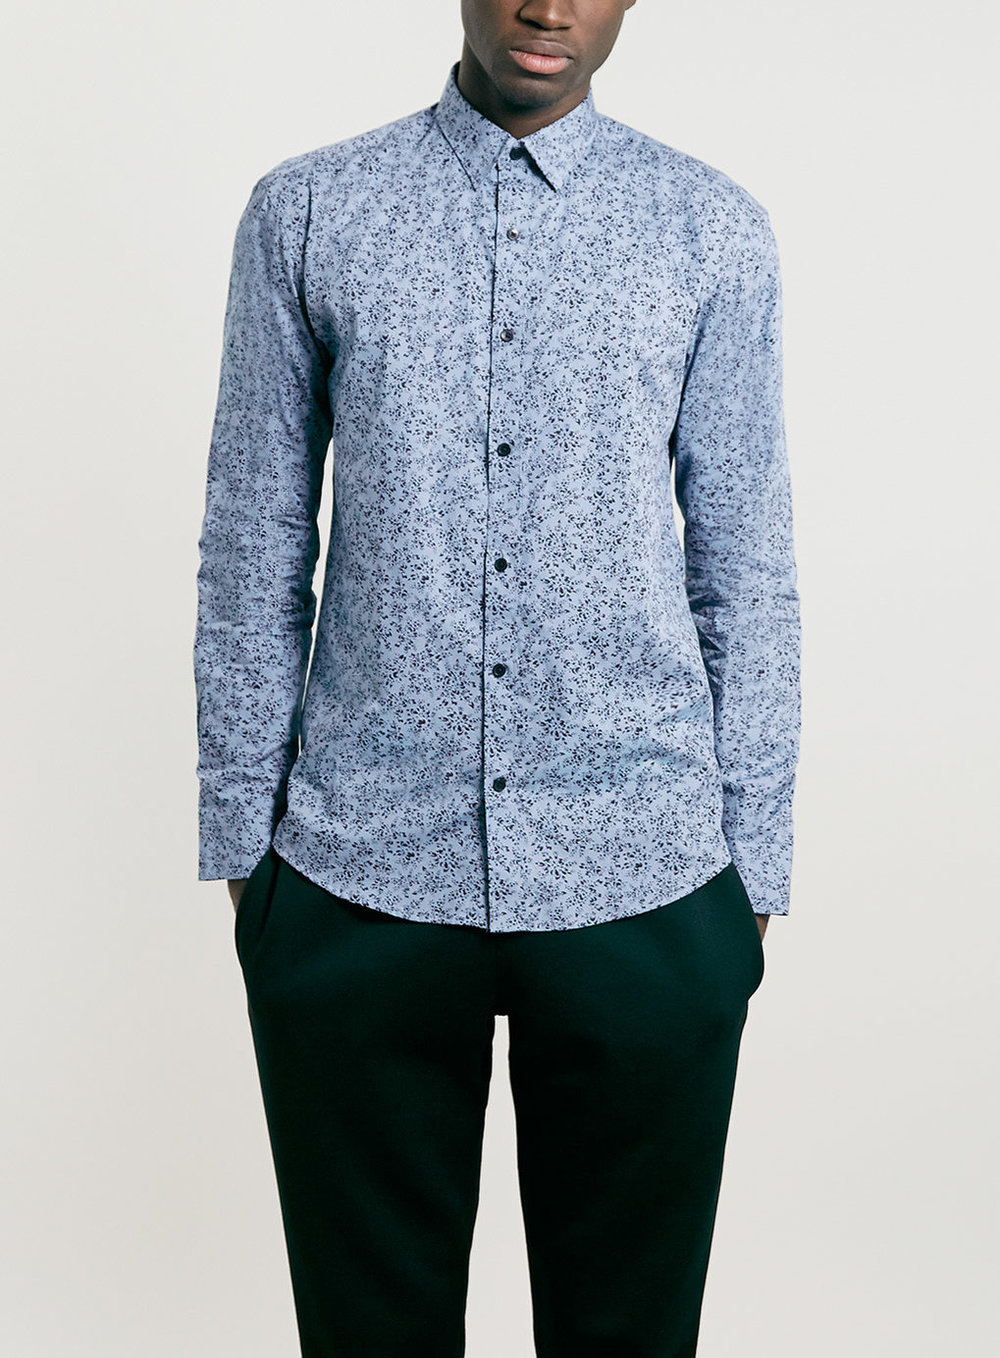 Selected Homme (Topman)  $70